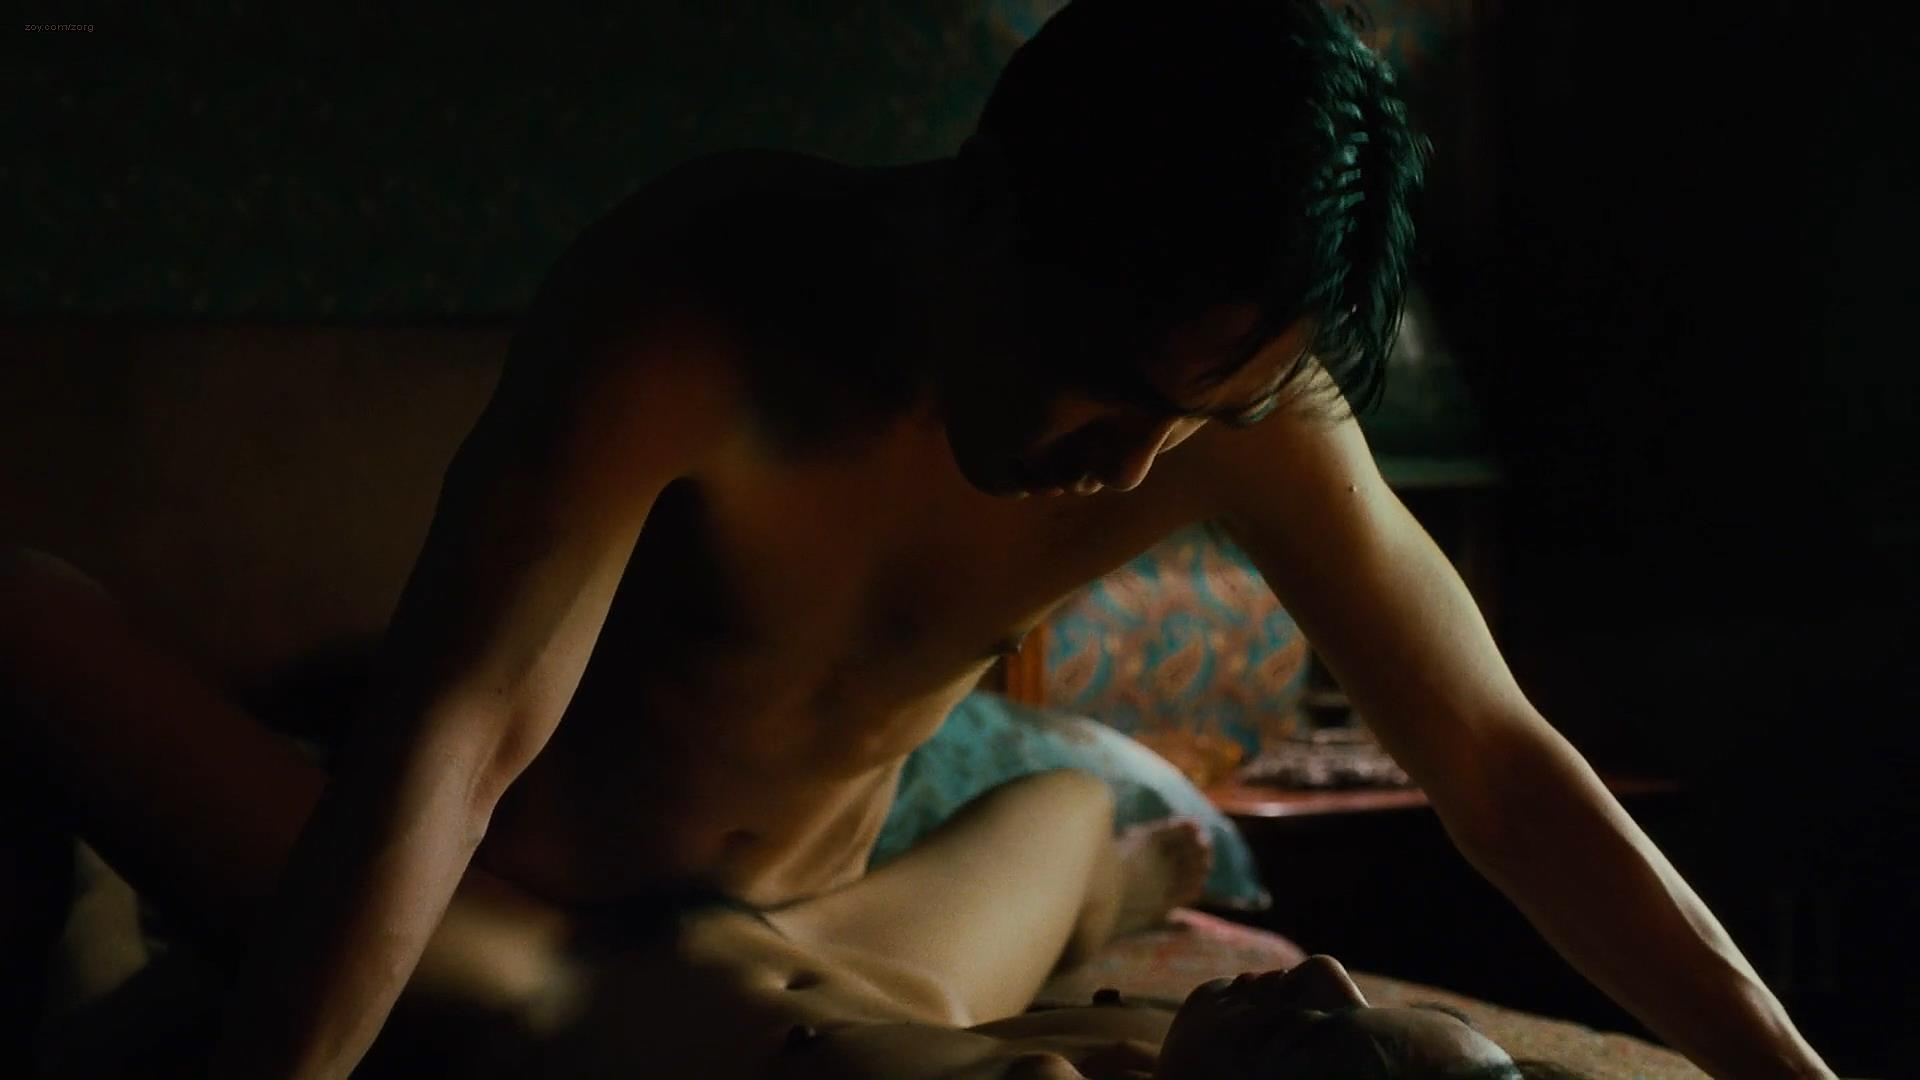 image Wei tang lust caution 2007 sex scenes